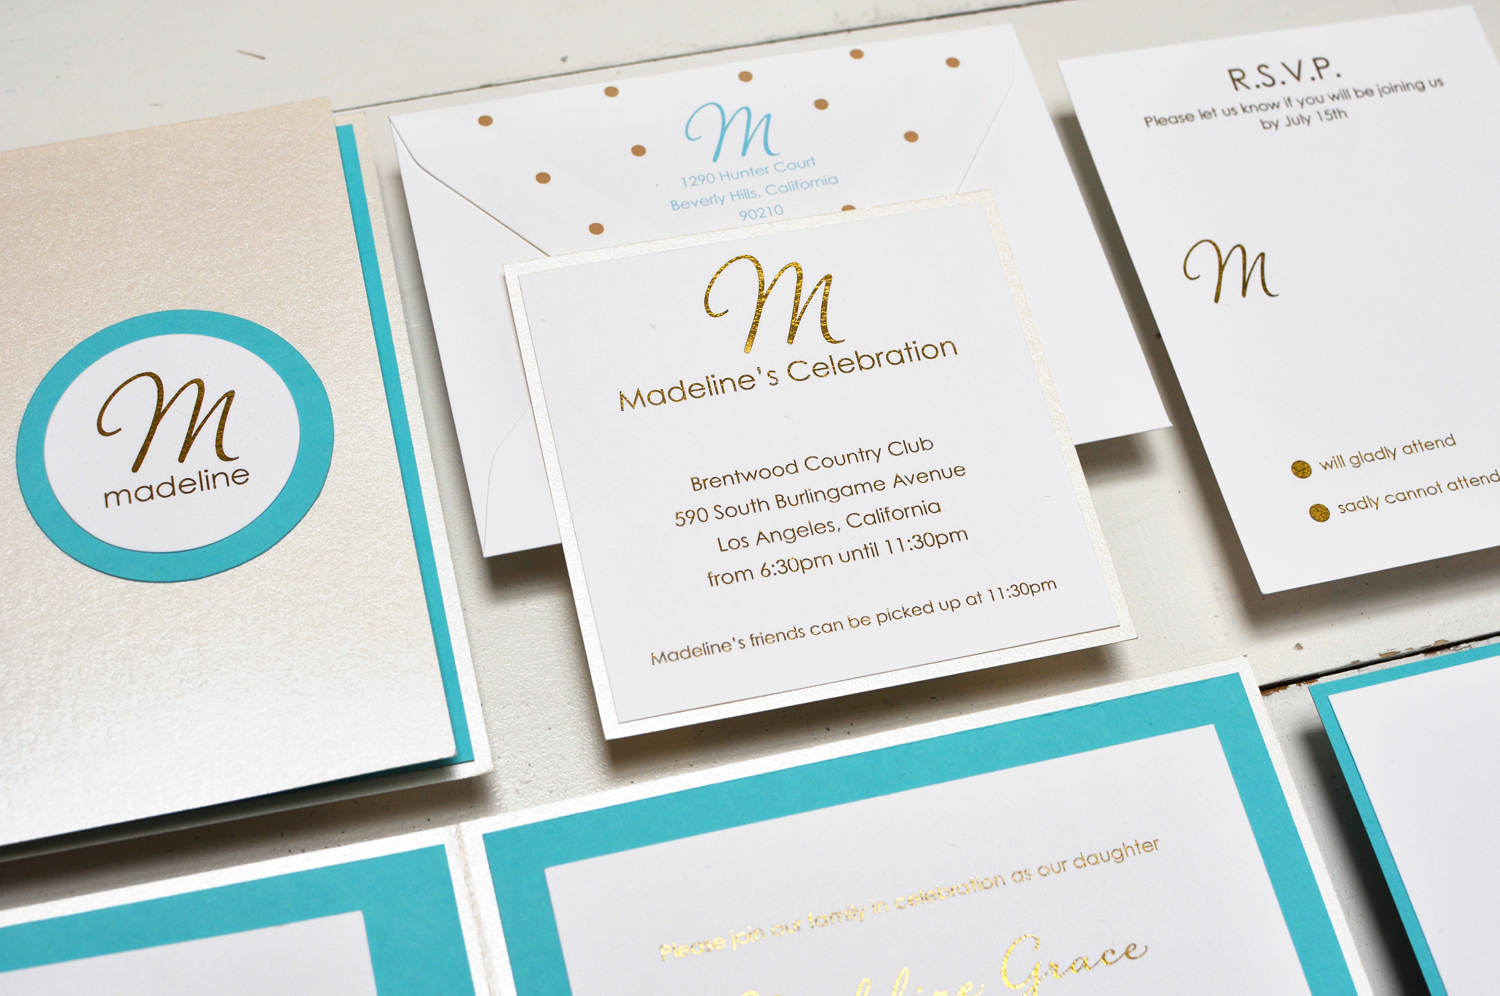 Madeline by B.T.Elements, Glitter Mitzvah Invitation, Shimmer pocket with teal and gold accents, Monogram and polka dot details, Gold glitter text